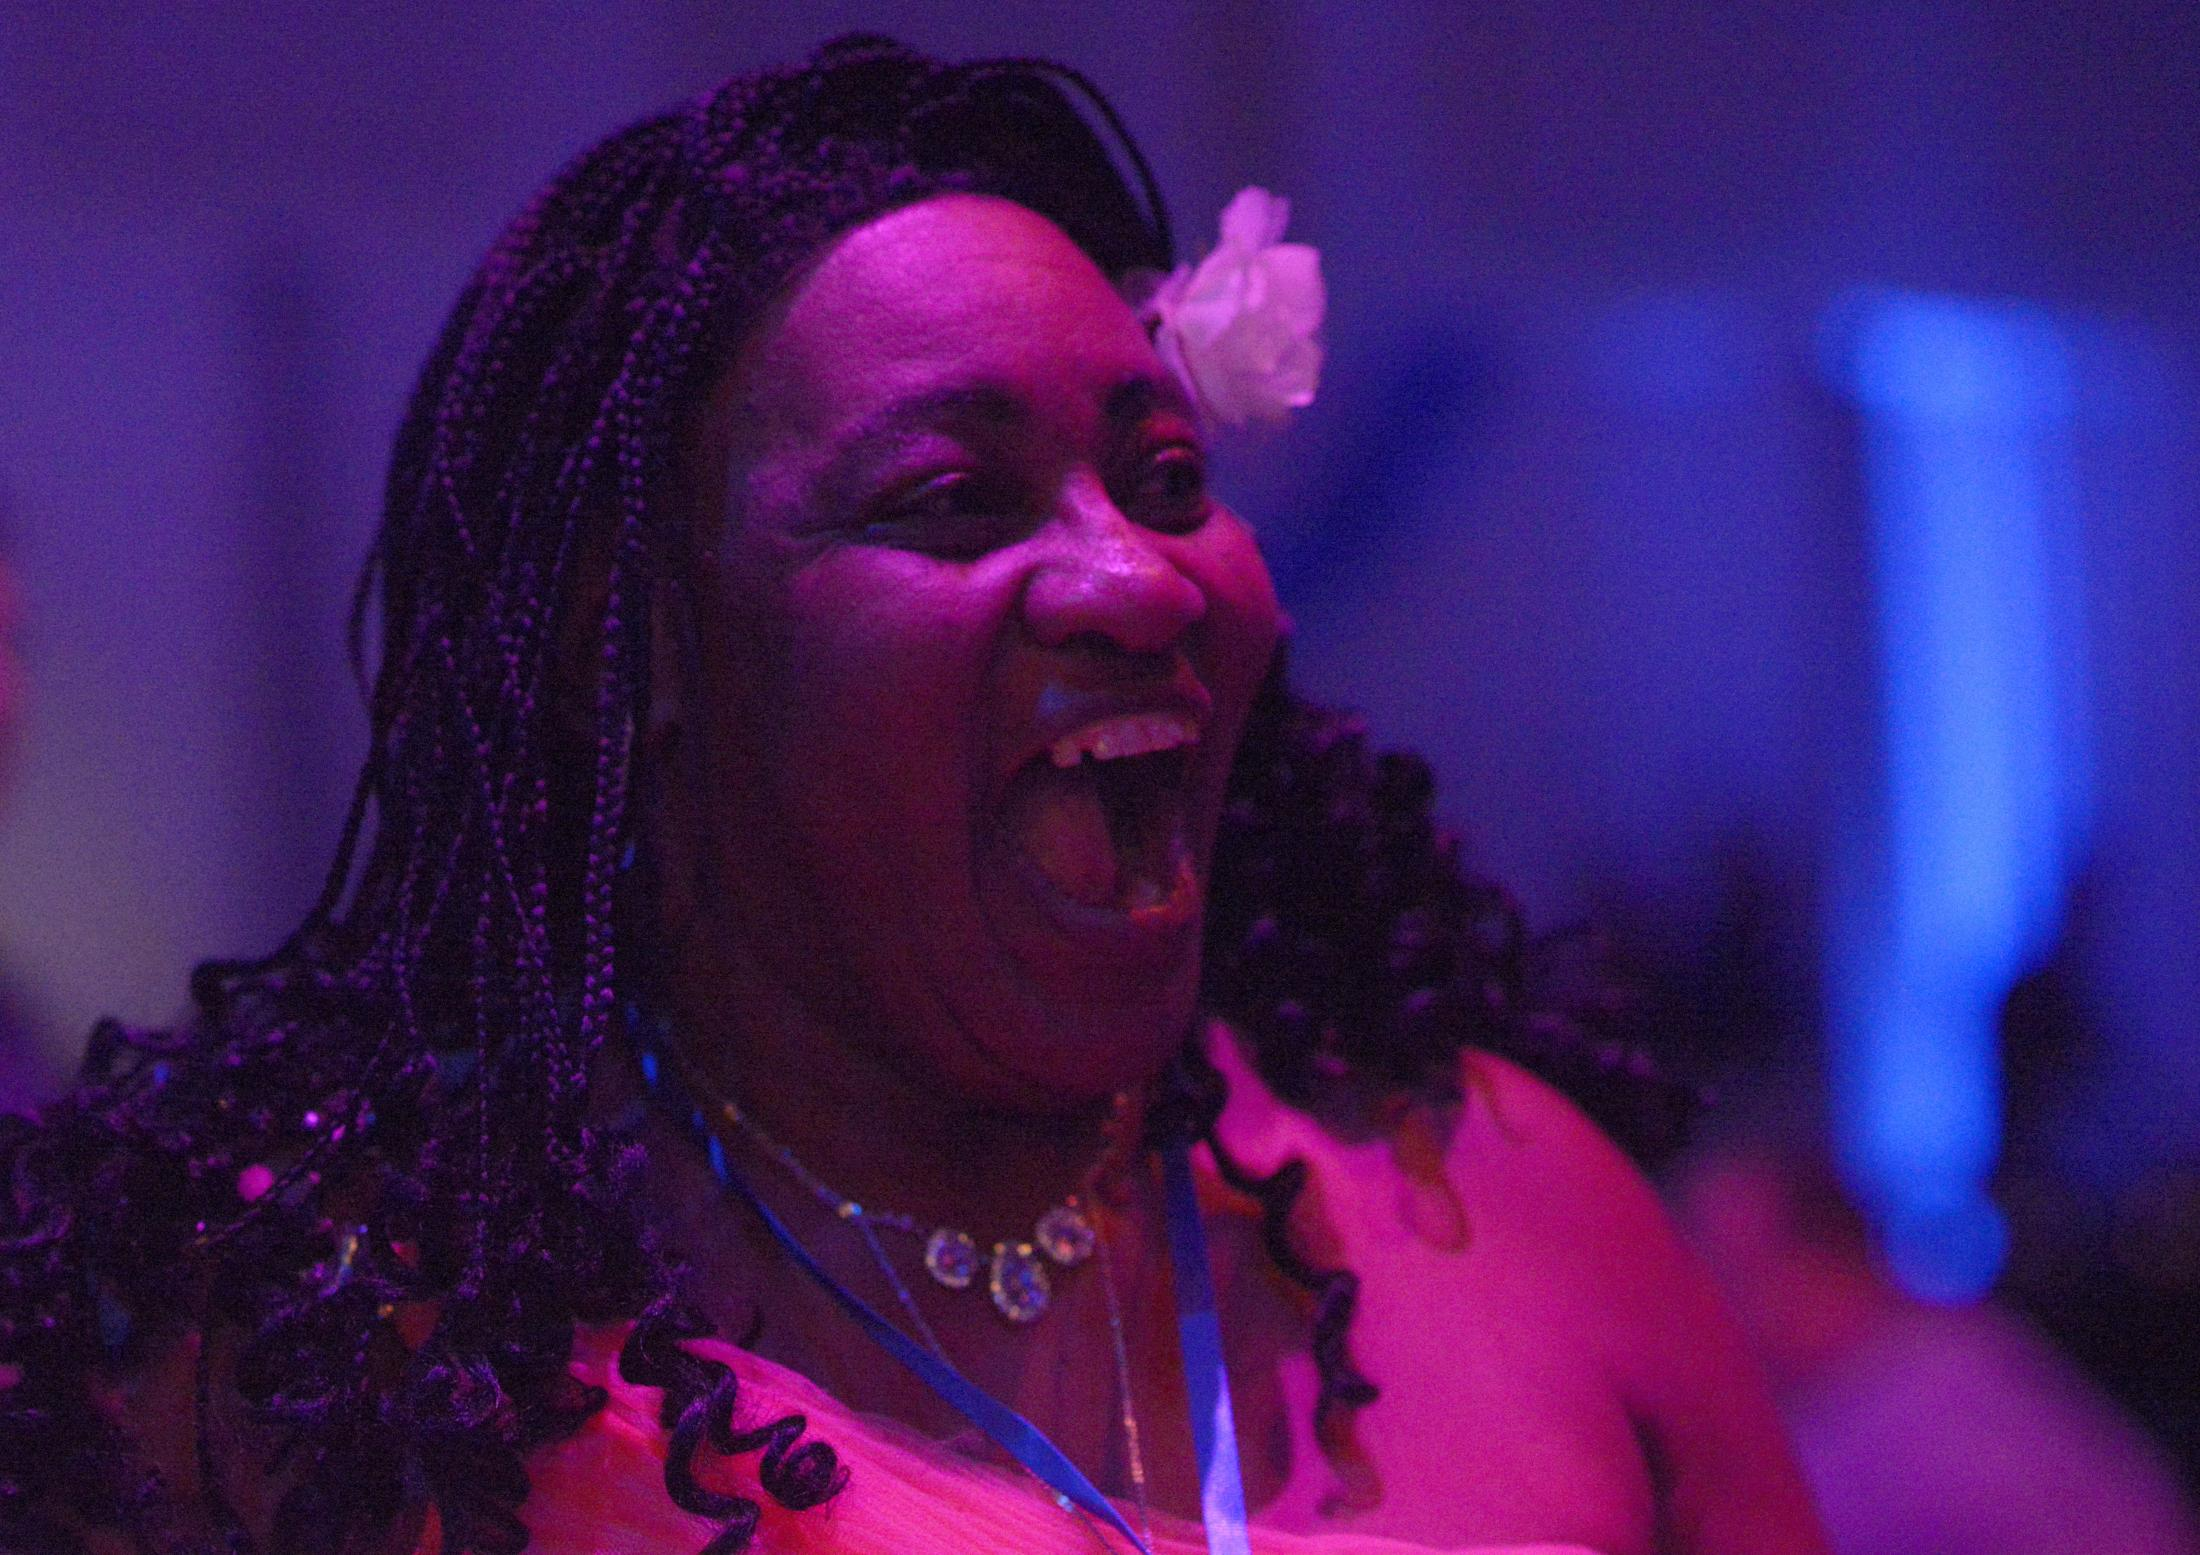 Donna Fullington smiles as she walks onto the dance floor Friday, Feb. 7, 2020, at the Night to Shine dance at The Crossing in Columbia. Fullington picked up the skirt of her peach gown and stepped onto the dance floor with confidence.